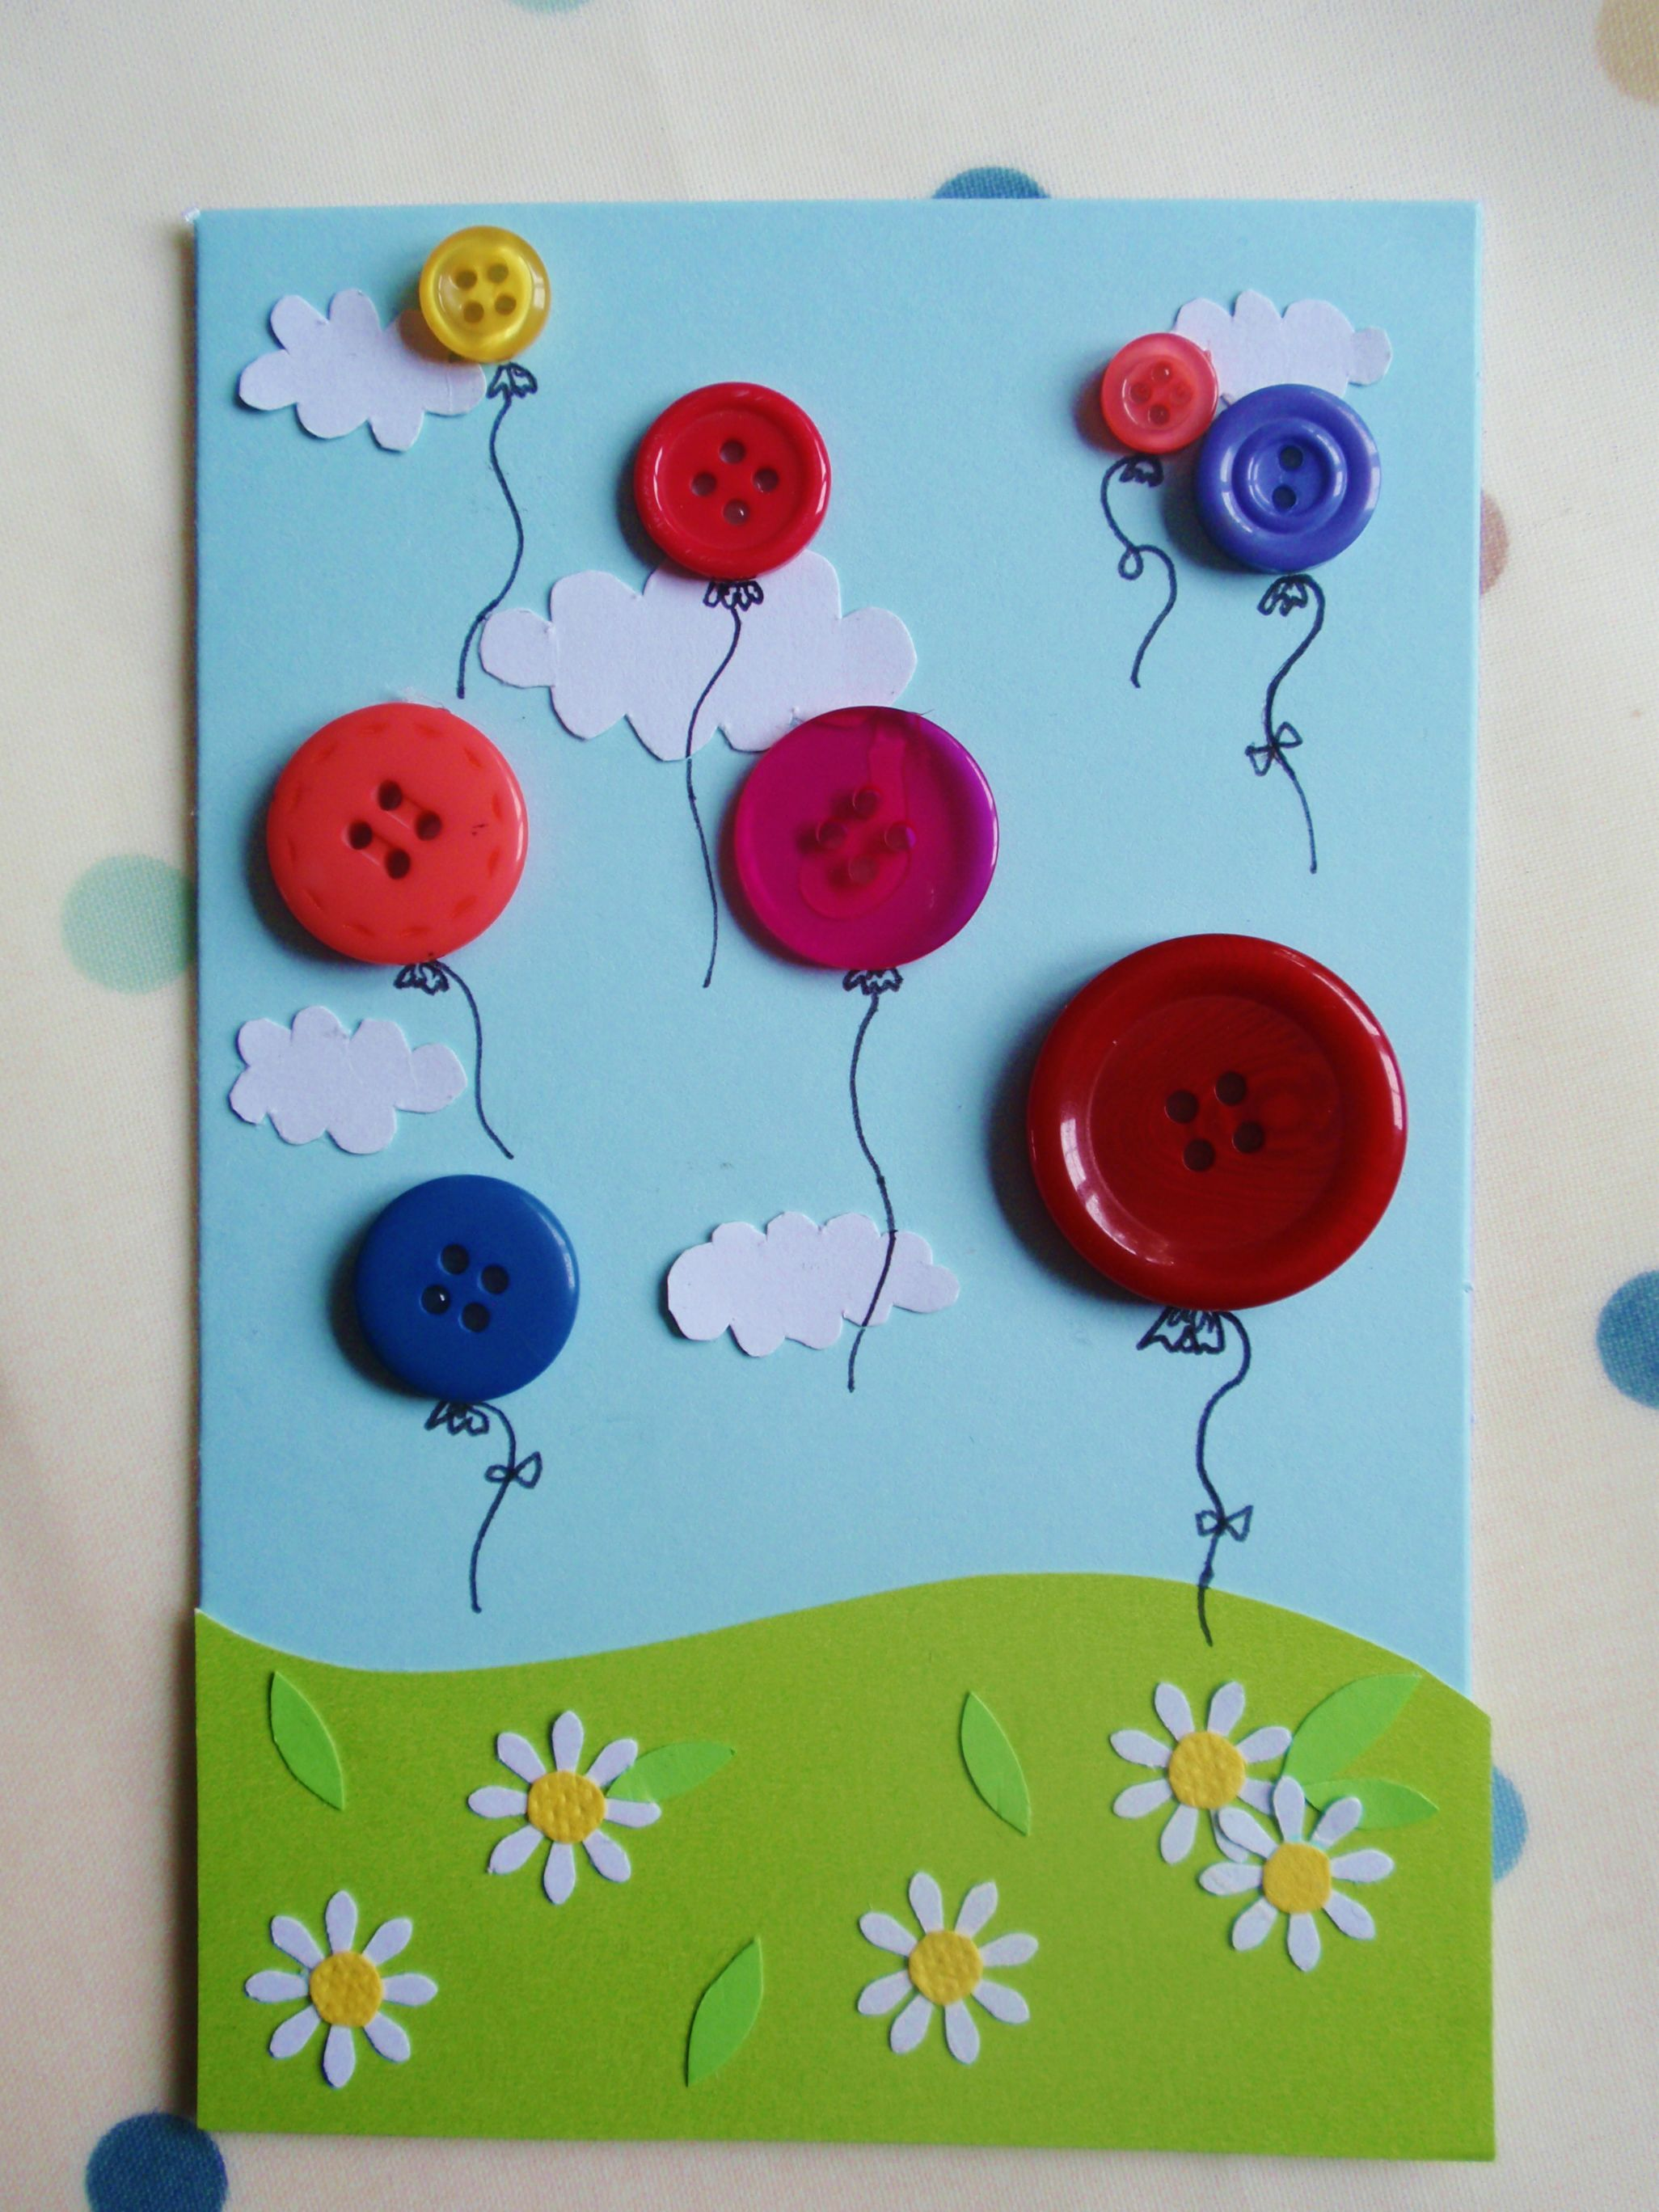 A handful of buttons birthday balloon card cards pinterest a handful of buttons birthday balloon card charity kristyandbryce Choice Image